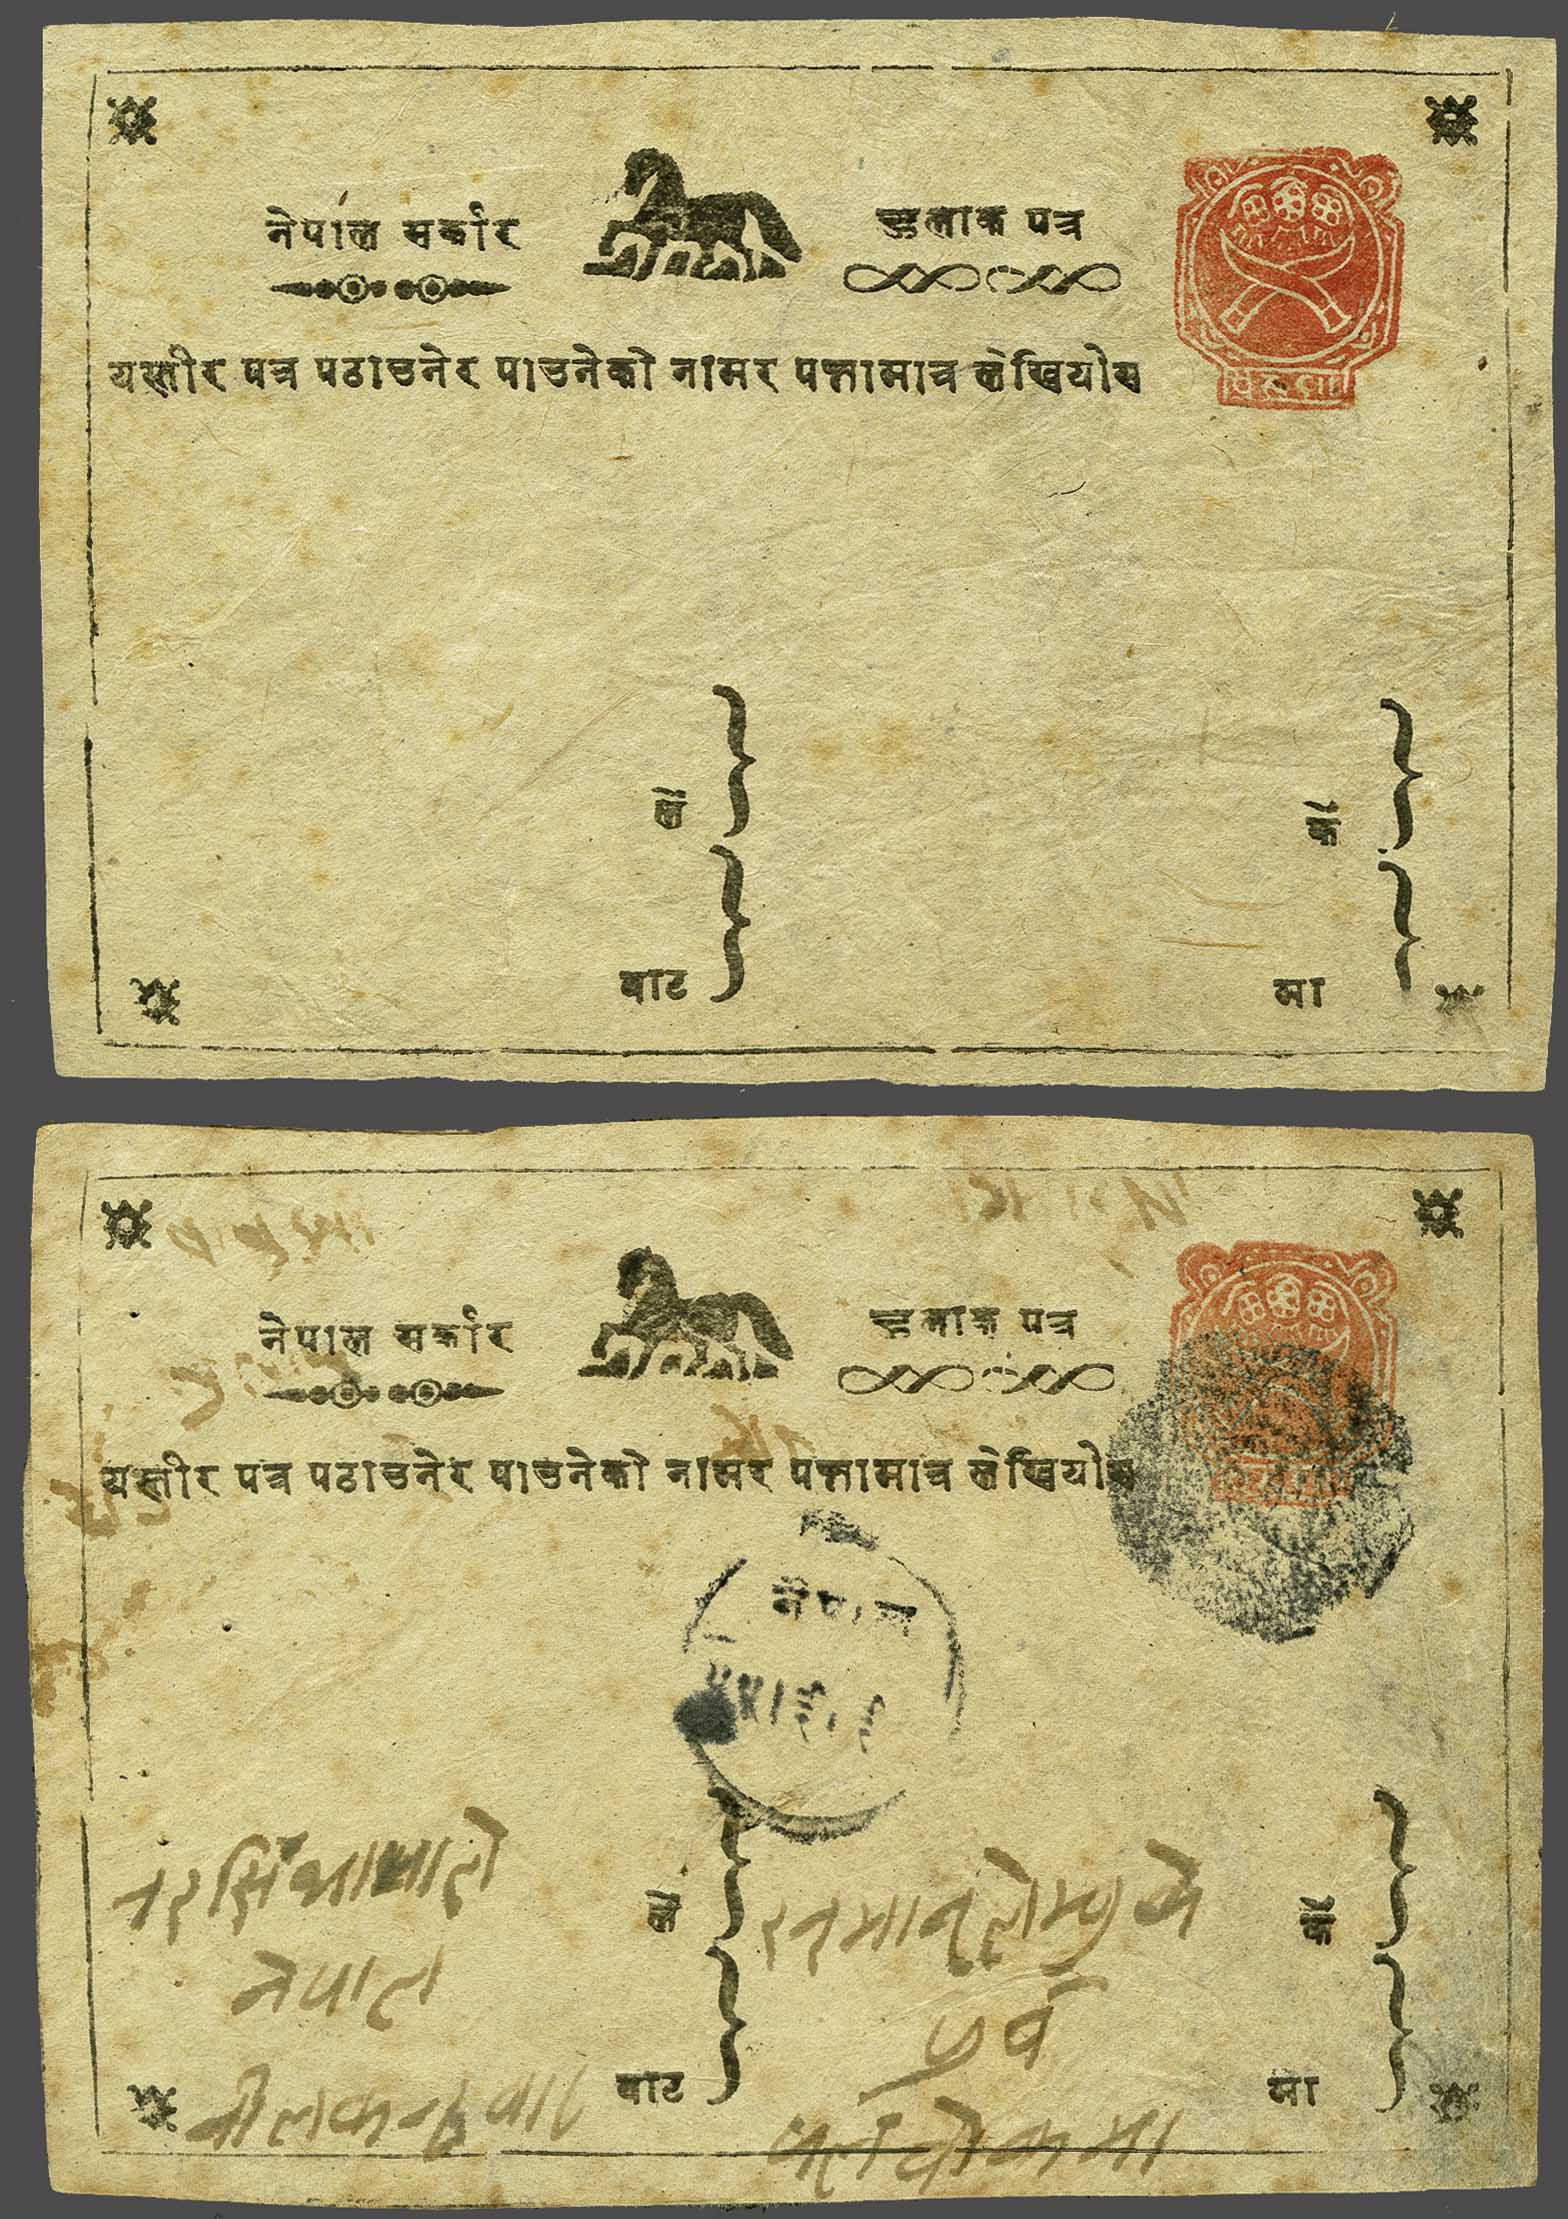 Lot 14 - Great Britain and former colonies Nepal -  Corinphila Veilingen Auction 245-246 Day 1 - Nepal - The Dick van der Wateren Collection, Foreign countries - Single lots, Picture postcards